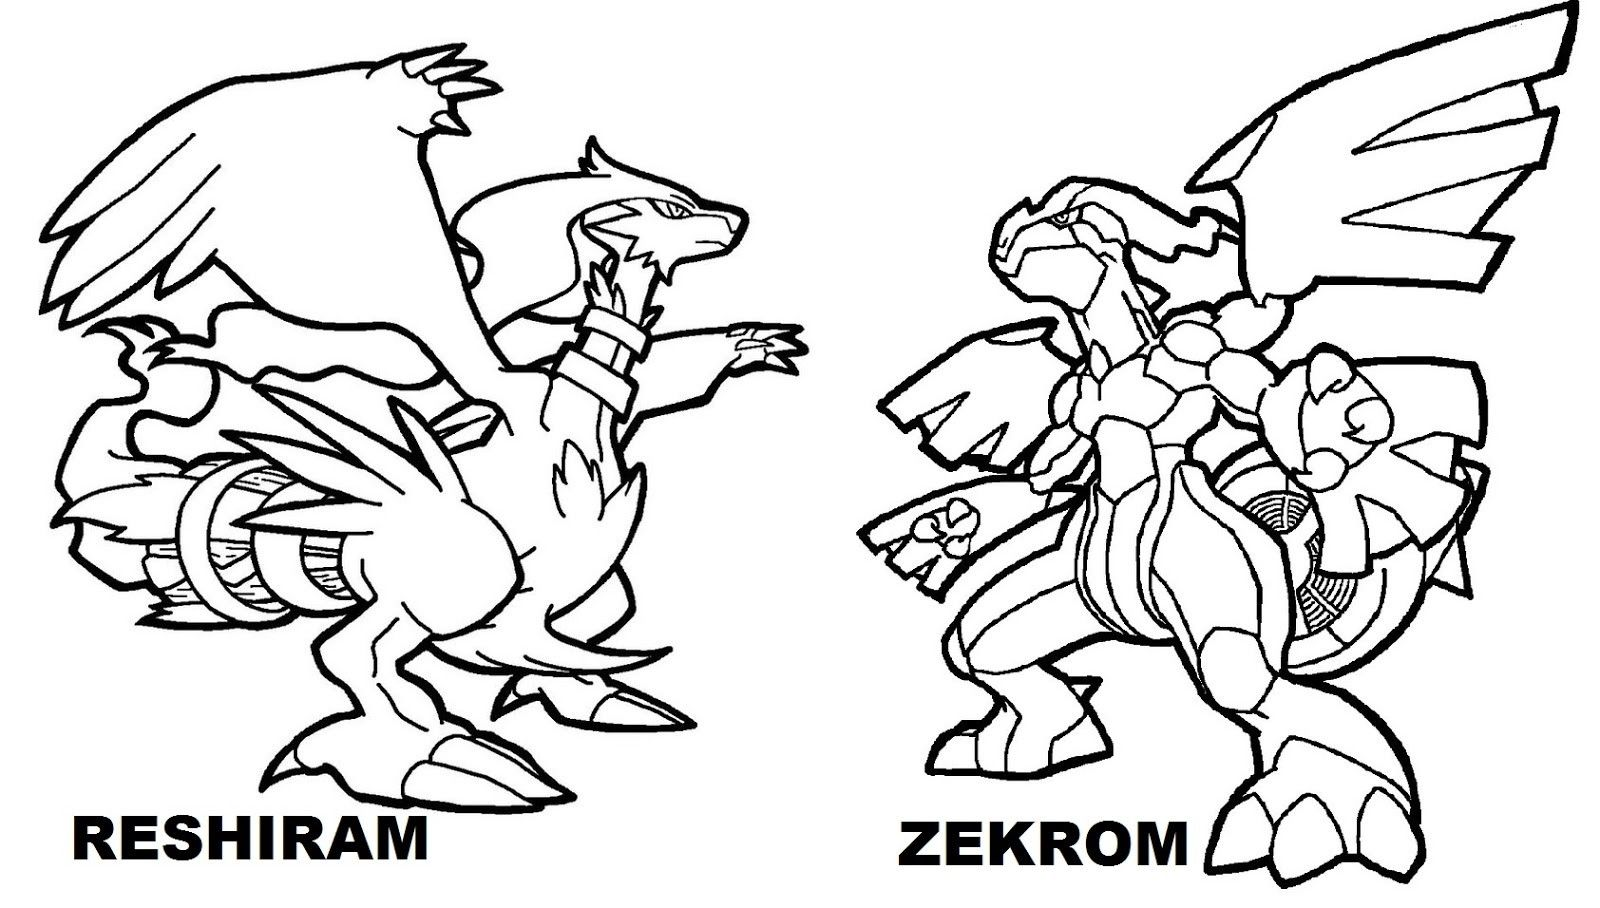 Pokemon Zekrom Coloring Pages Through The Thousands Of Images Online In Relation To Pokemon Pokemon Coloring Pages Moon Coloring Pages Cartoon Coloring Pages